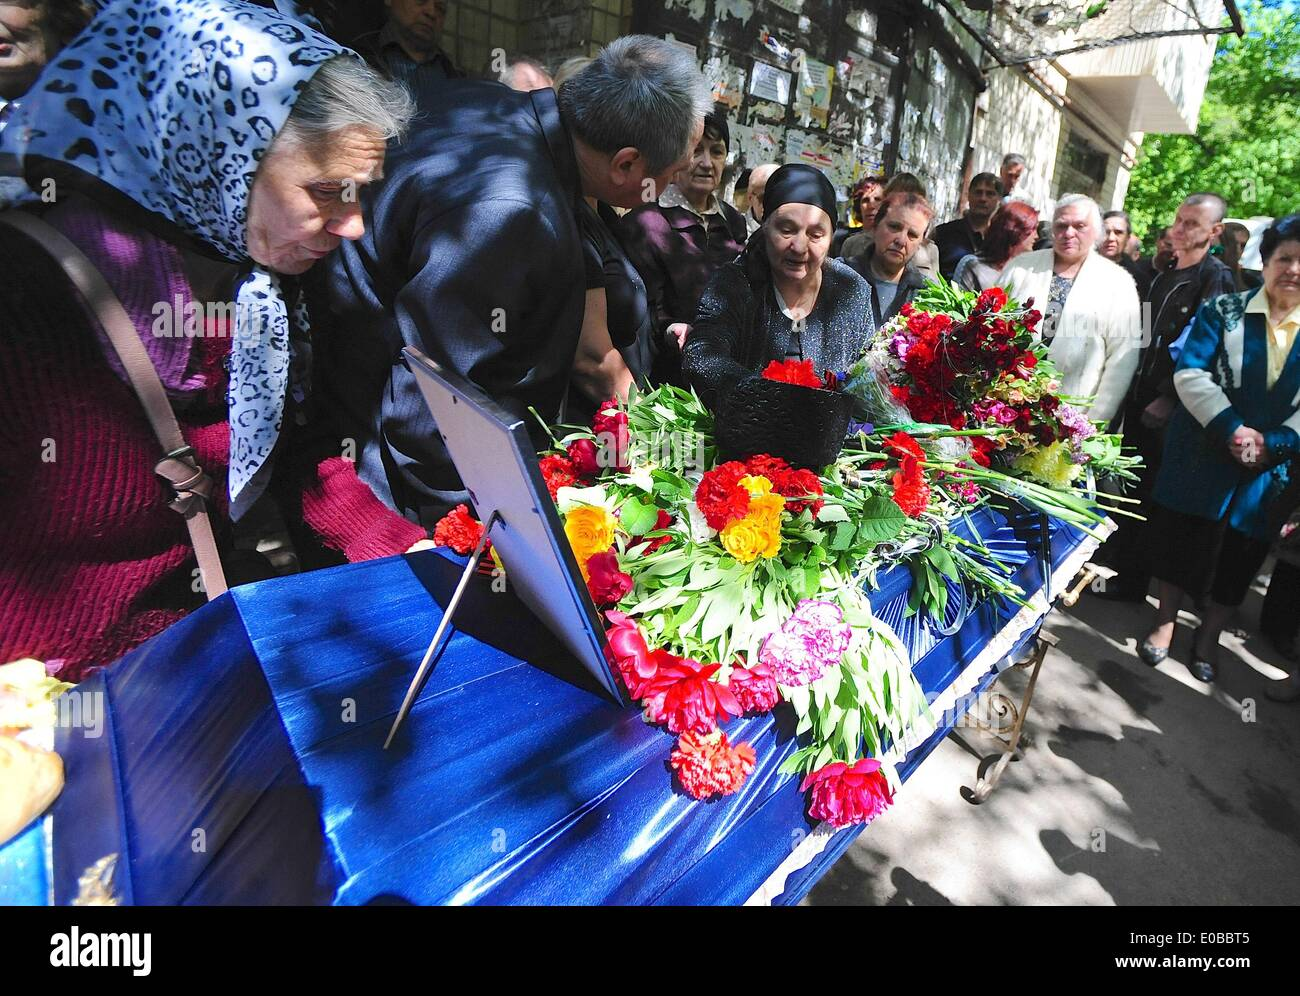 Odessa, Ukraine. 8th May, 2014. Family and friends gather for the funeral for Dmitry Nikityuk, 39, killed in the Odessa Trade Union buliding fire. He was buried in a closed coffin due to the severe disfigurement caused by the fire. Credit:  Gail Orenstein/ZUMAPRESS.com/Alamy Live News - Stock Image